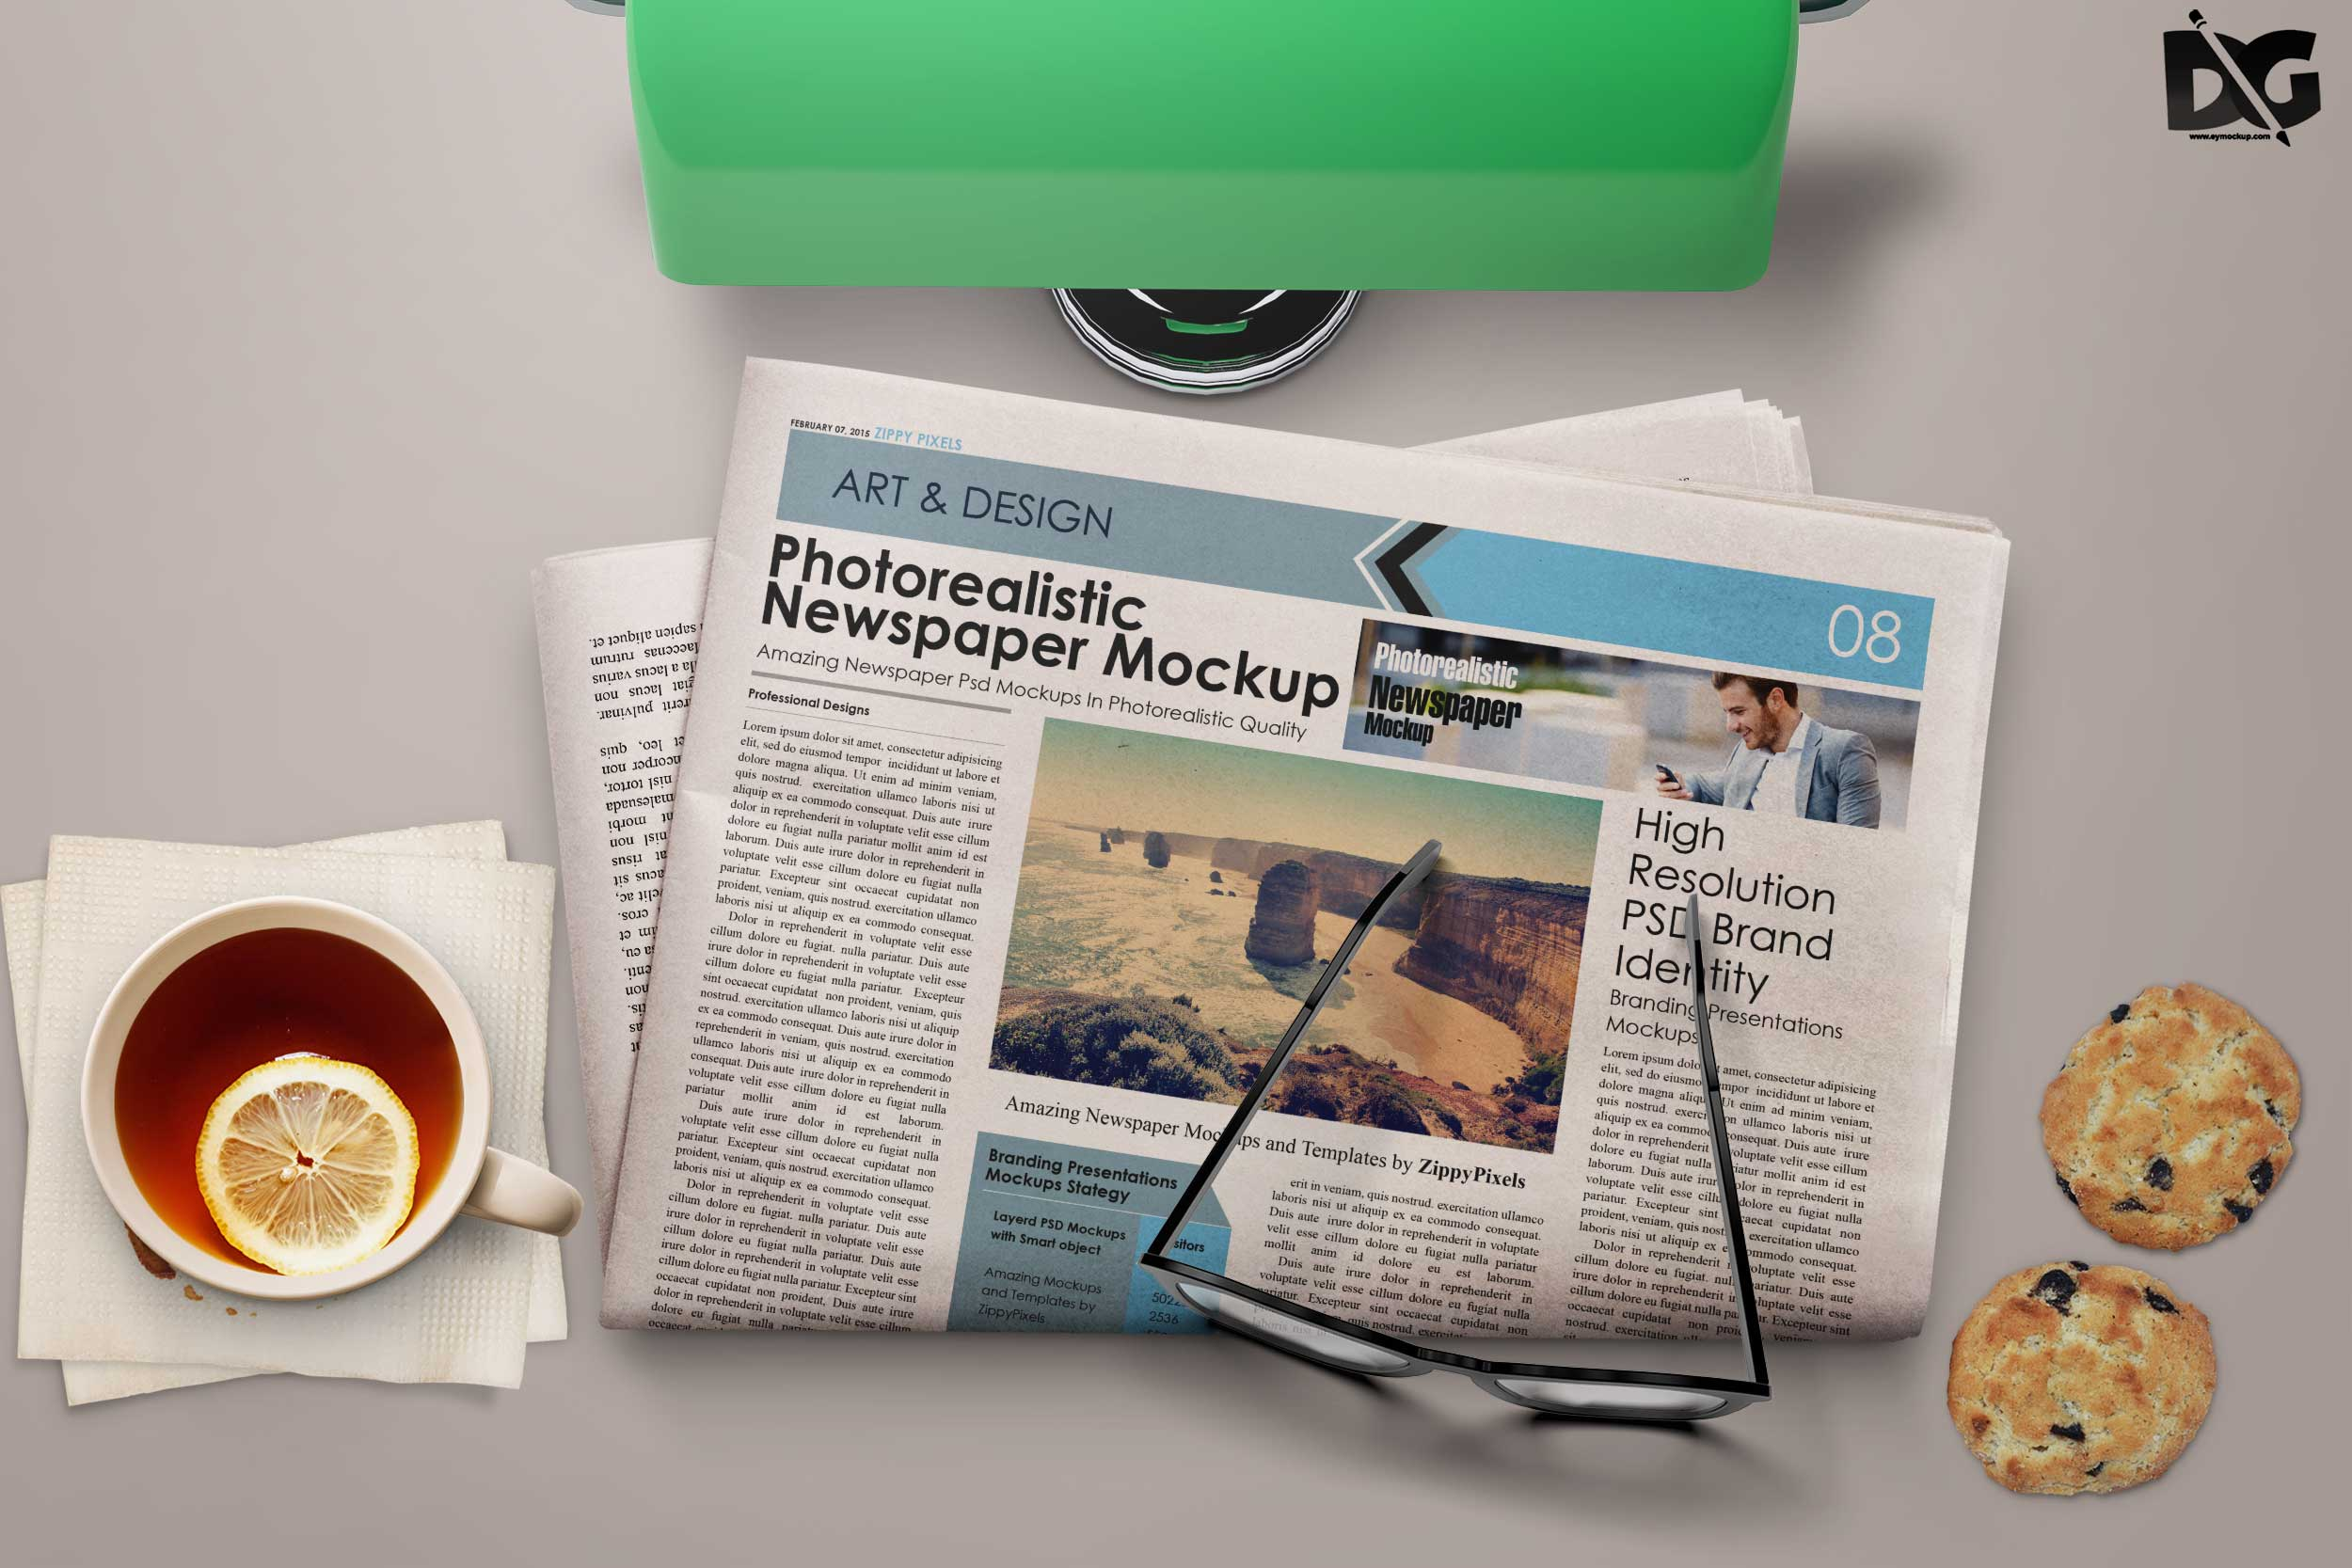 Morning NewsPaper Mockup